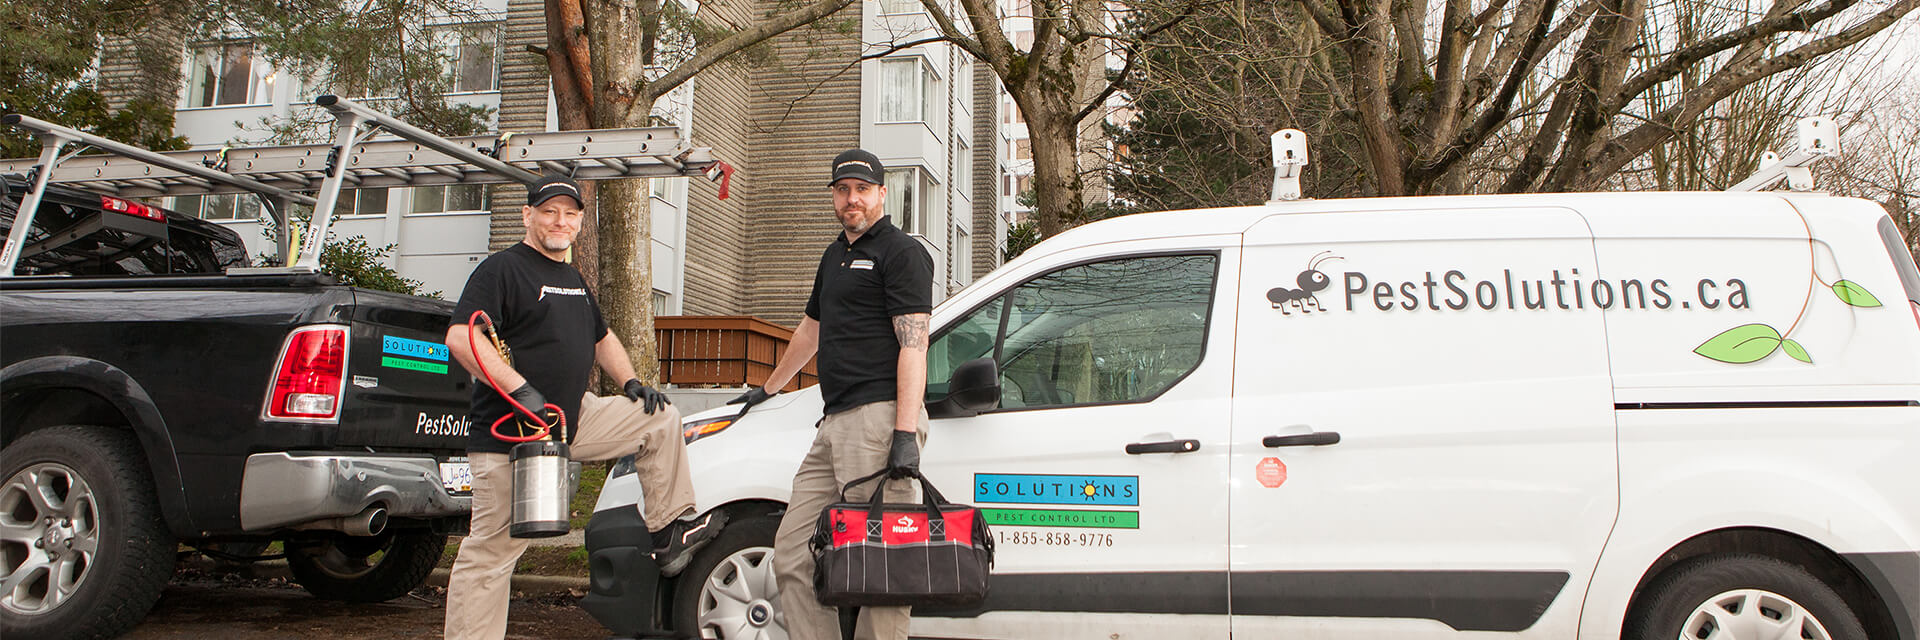 Solutions Pest Control service tech gearing up from their trucks